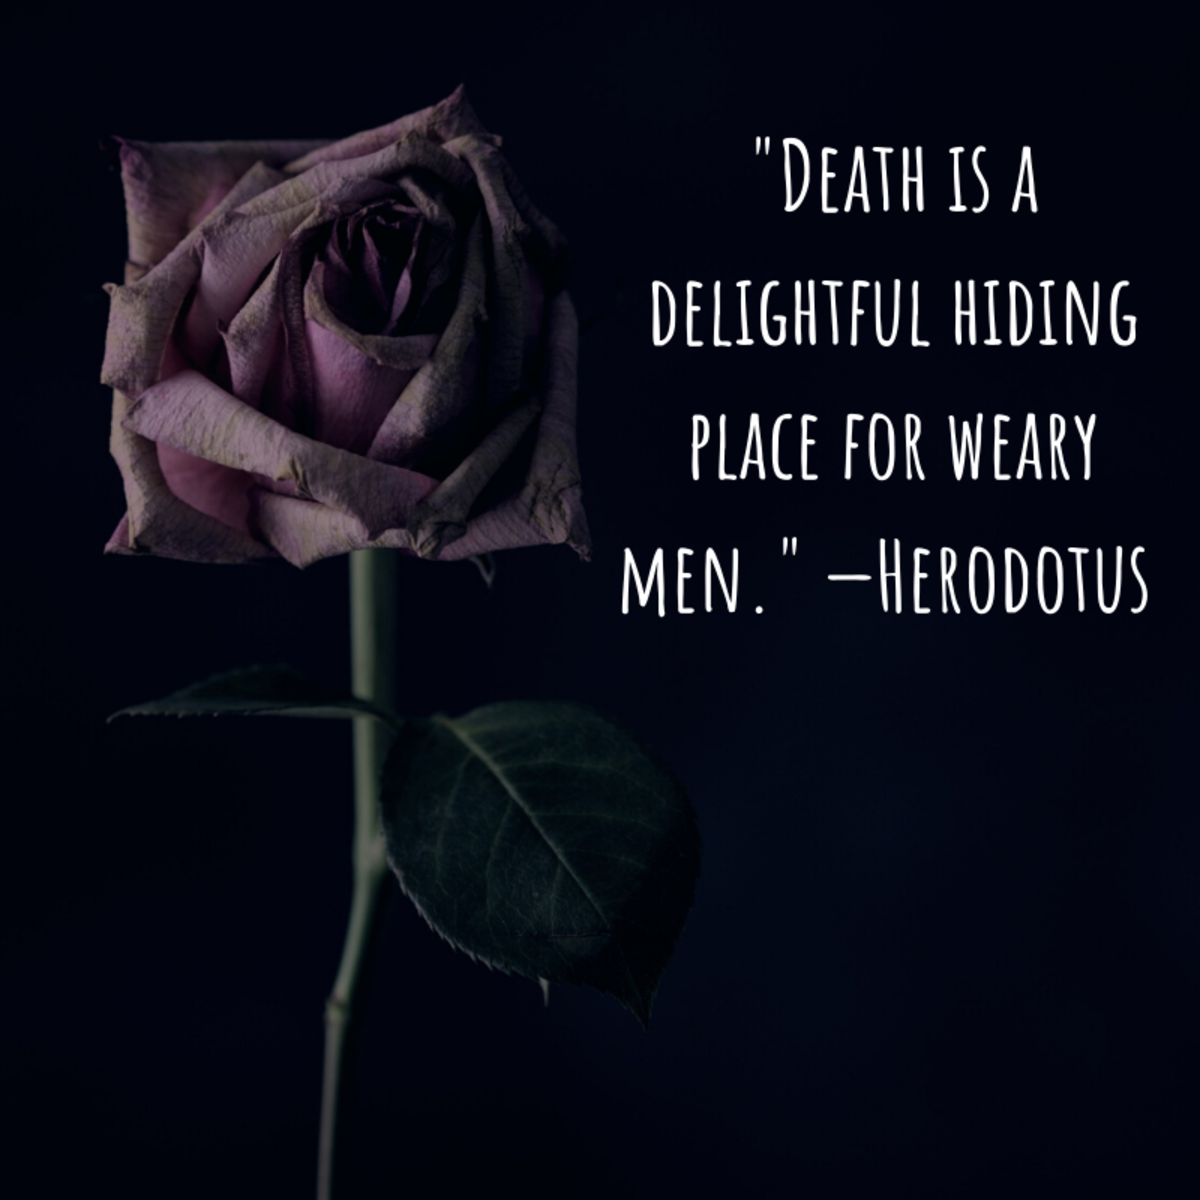 """Death is a delightful hiding place for weary men."" —Herodotus (historian)"